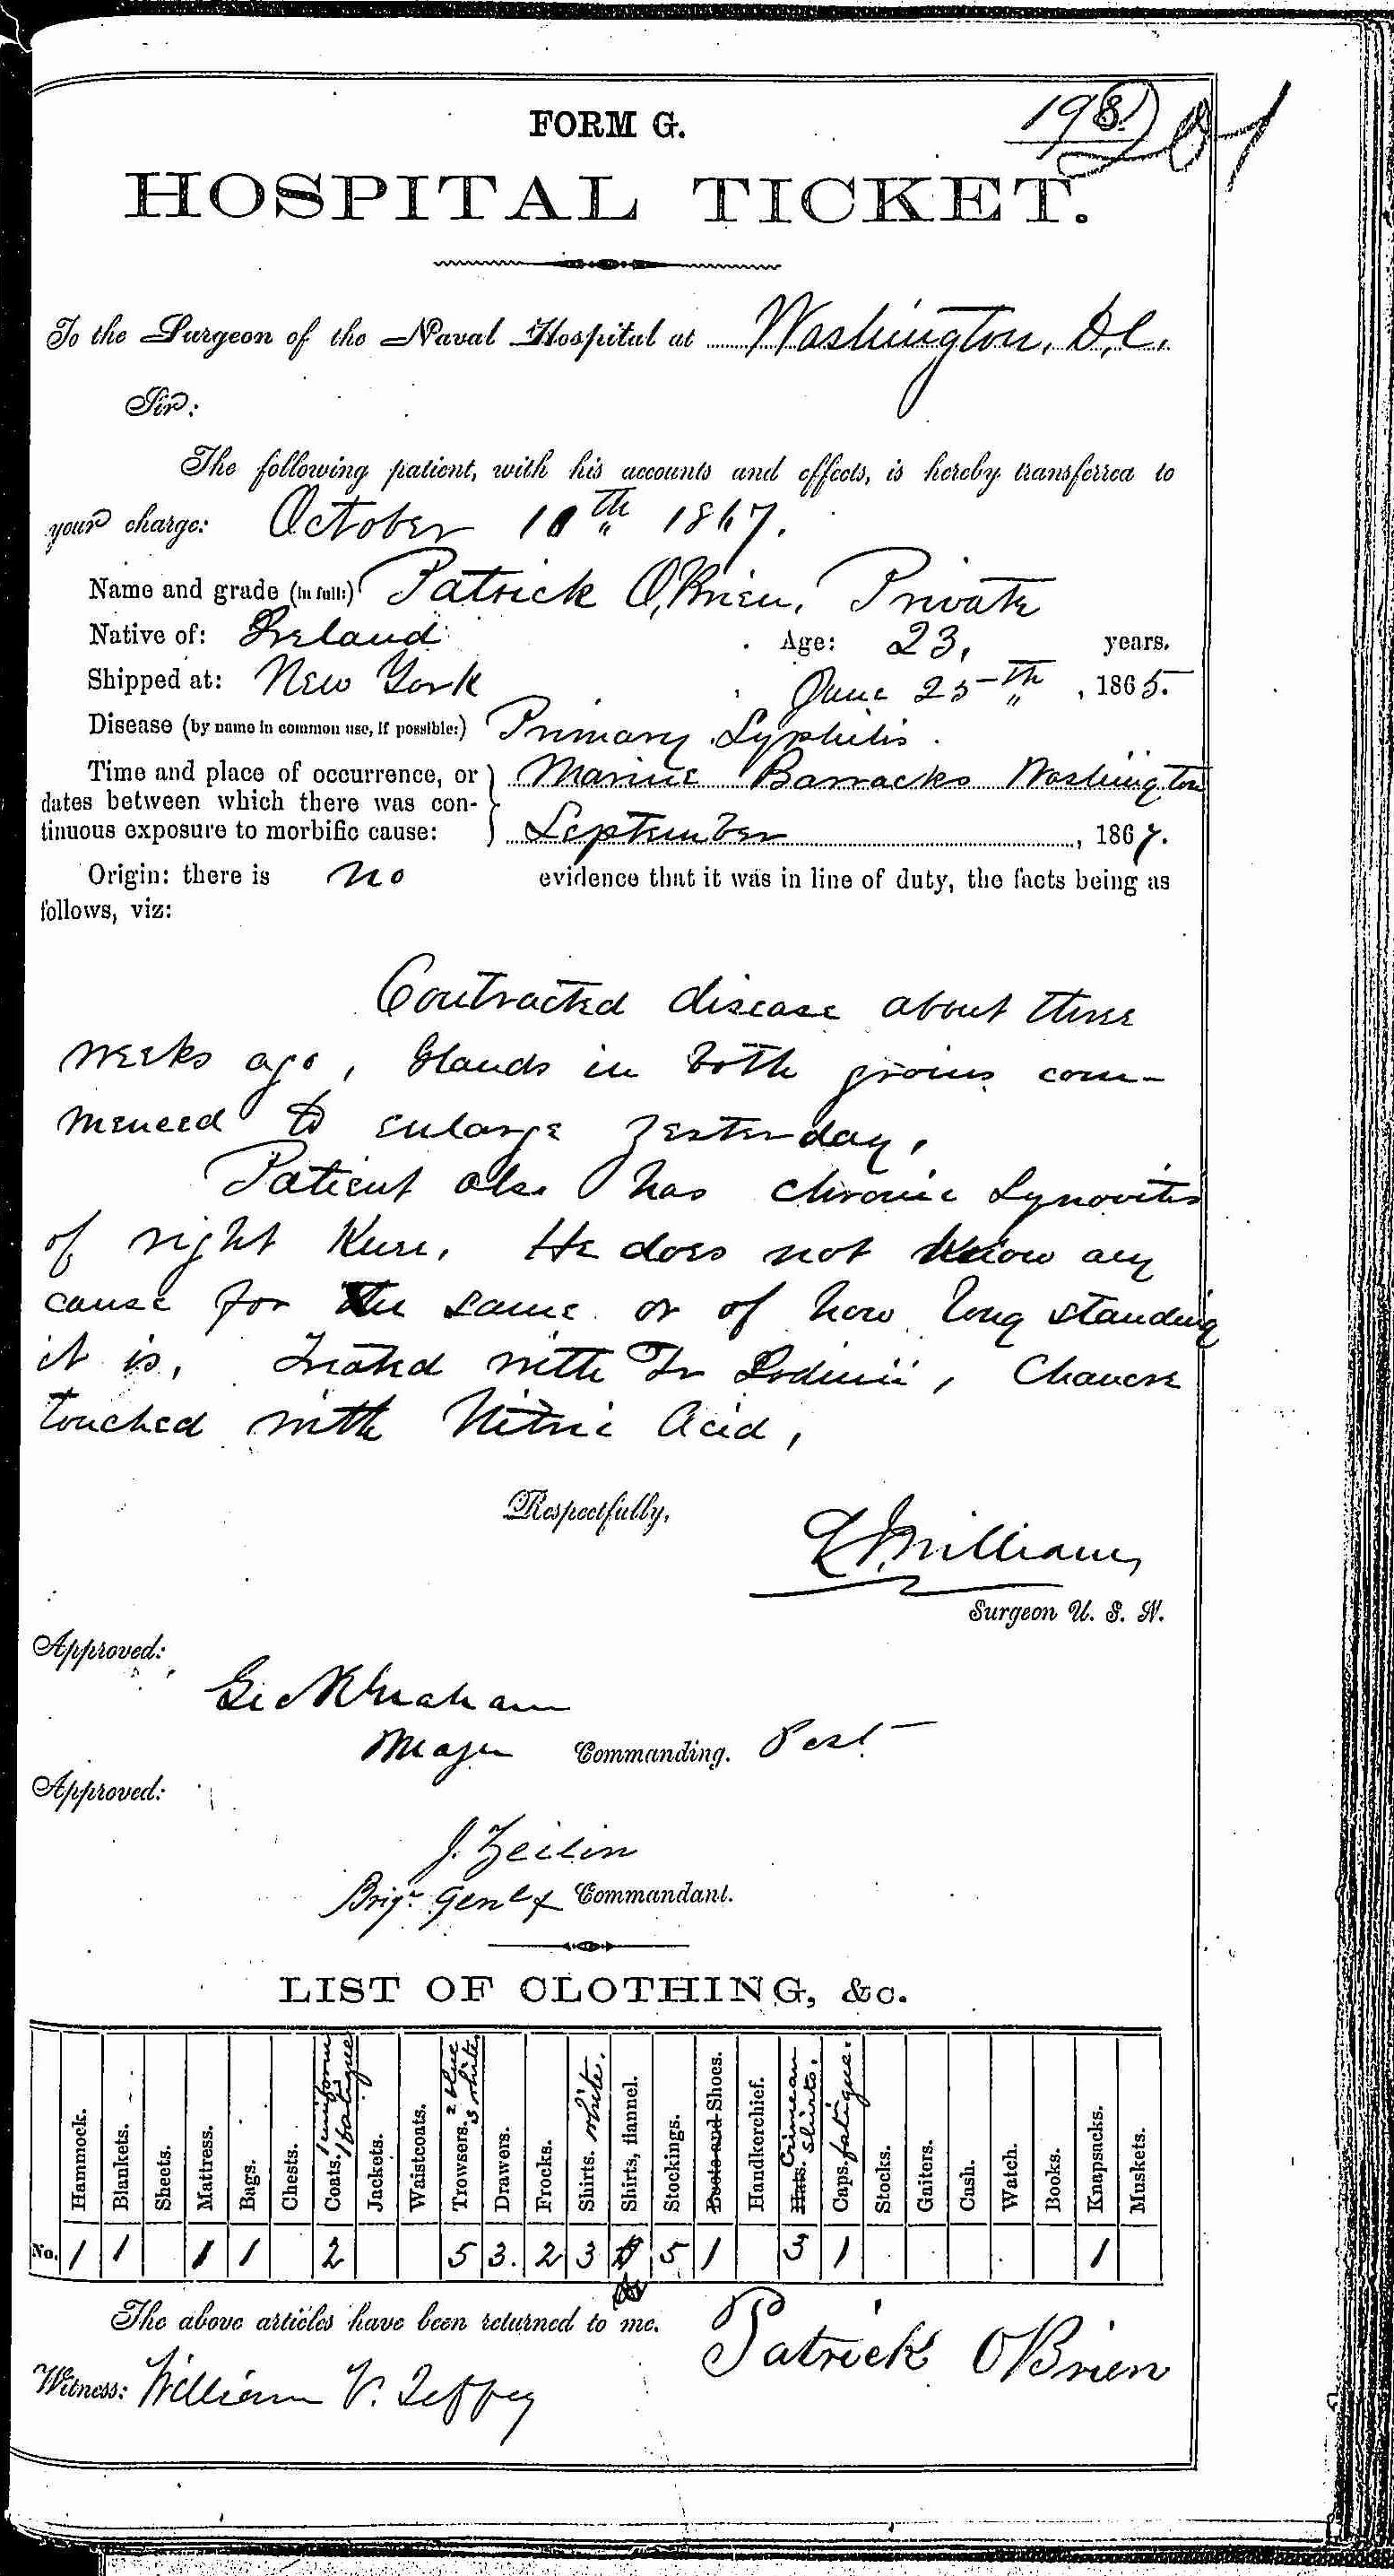 Entry for Patrick O'Brien (page 1 of 2) in the log Hospital Tickets and Case Papers - Naval Hospital - Washington, D.C. - 1866-68